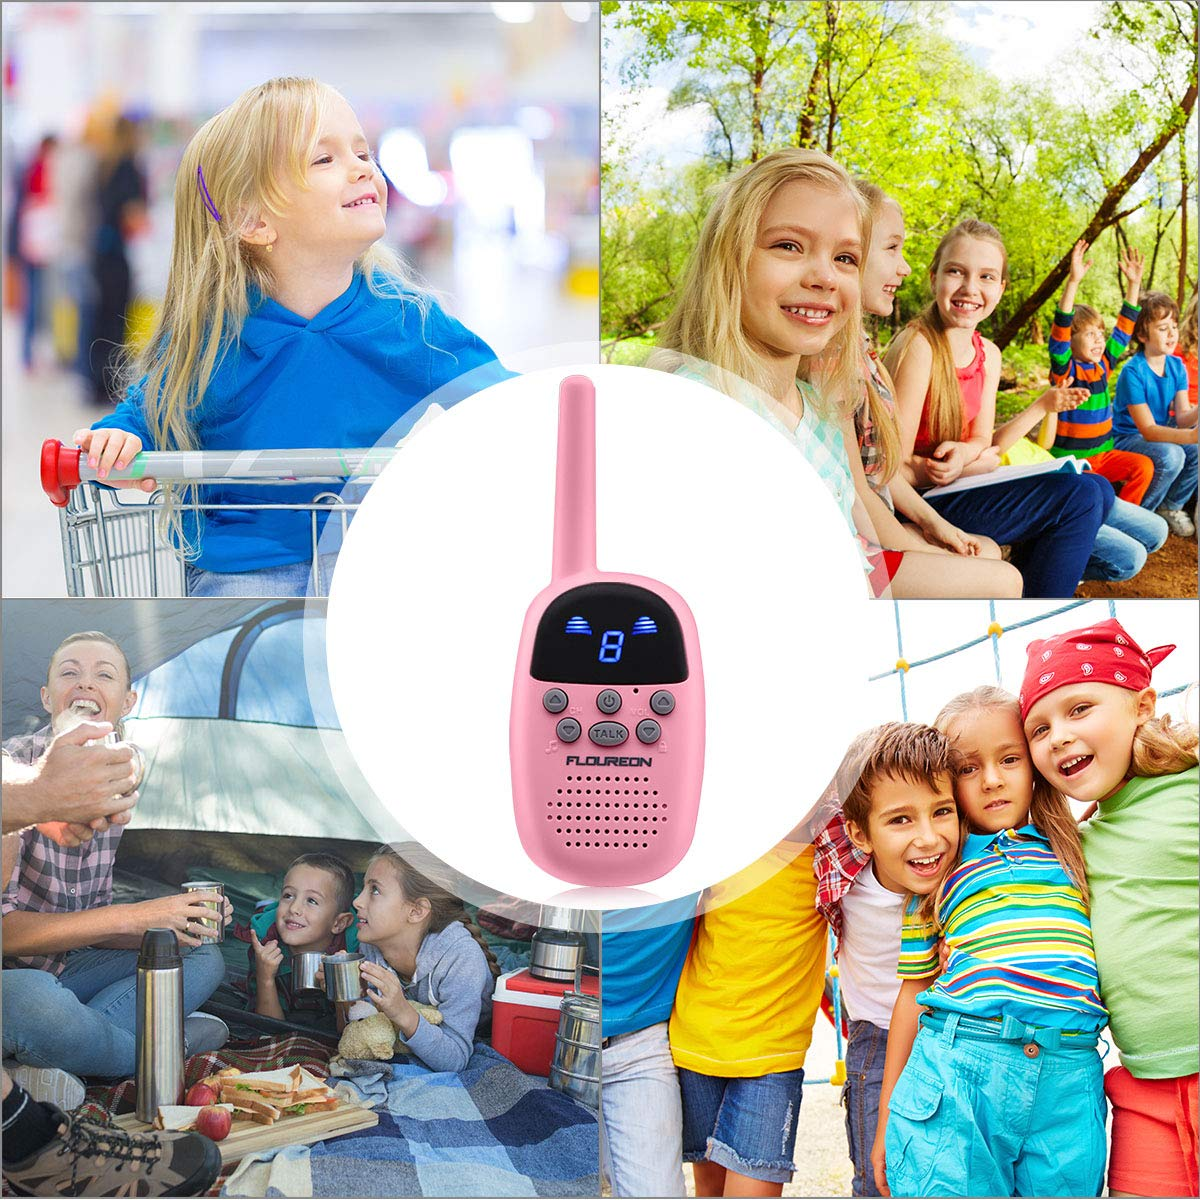 Spronto Kids Walkie Talkies 9 Channel Two Way Radio Twins Walkie Talkies FRS/GMRS Handheld Interphone Long Range for Trips Outdoor Activities (Pink) by Spronto (Image #7)